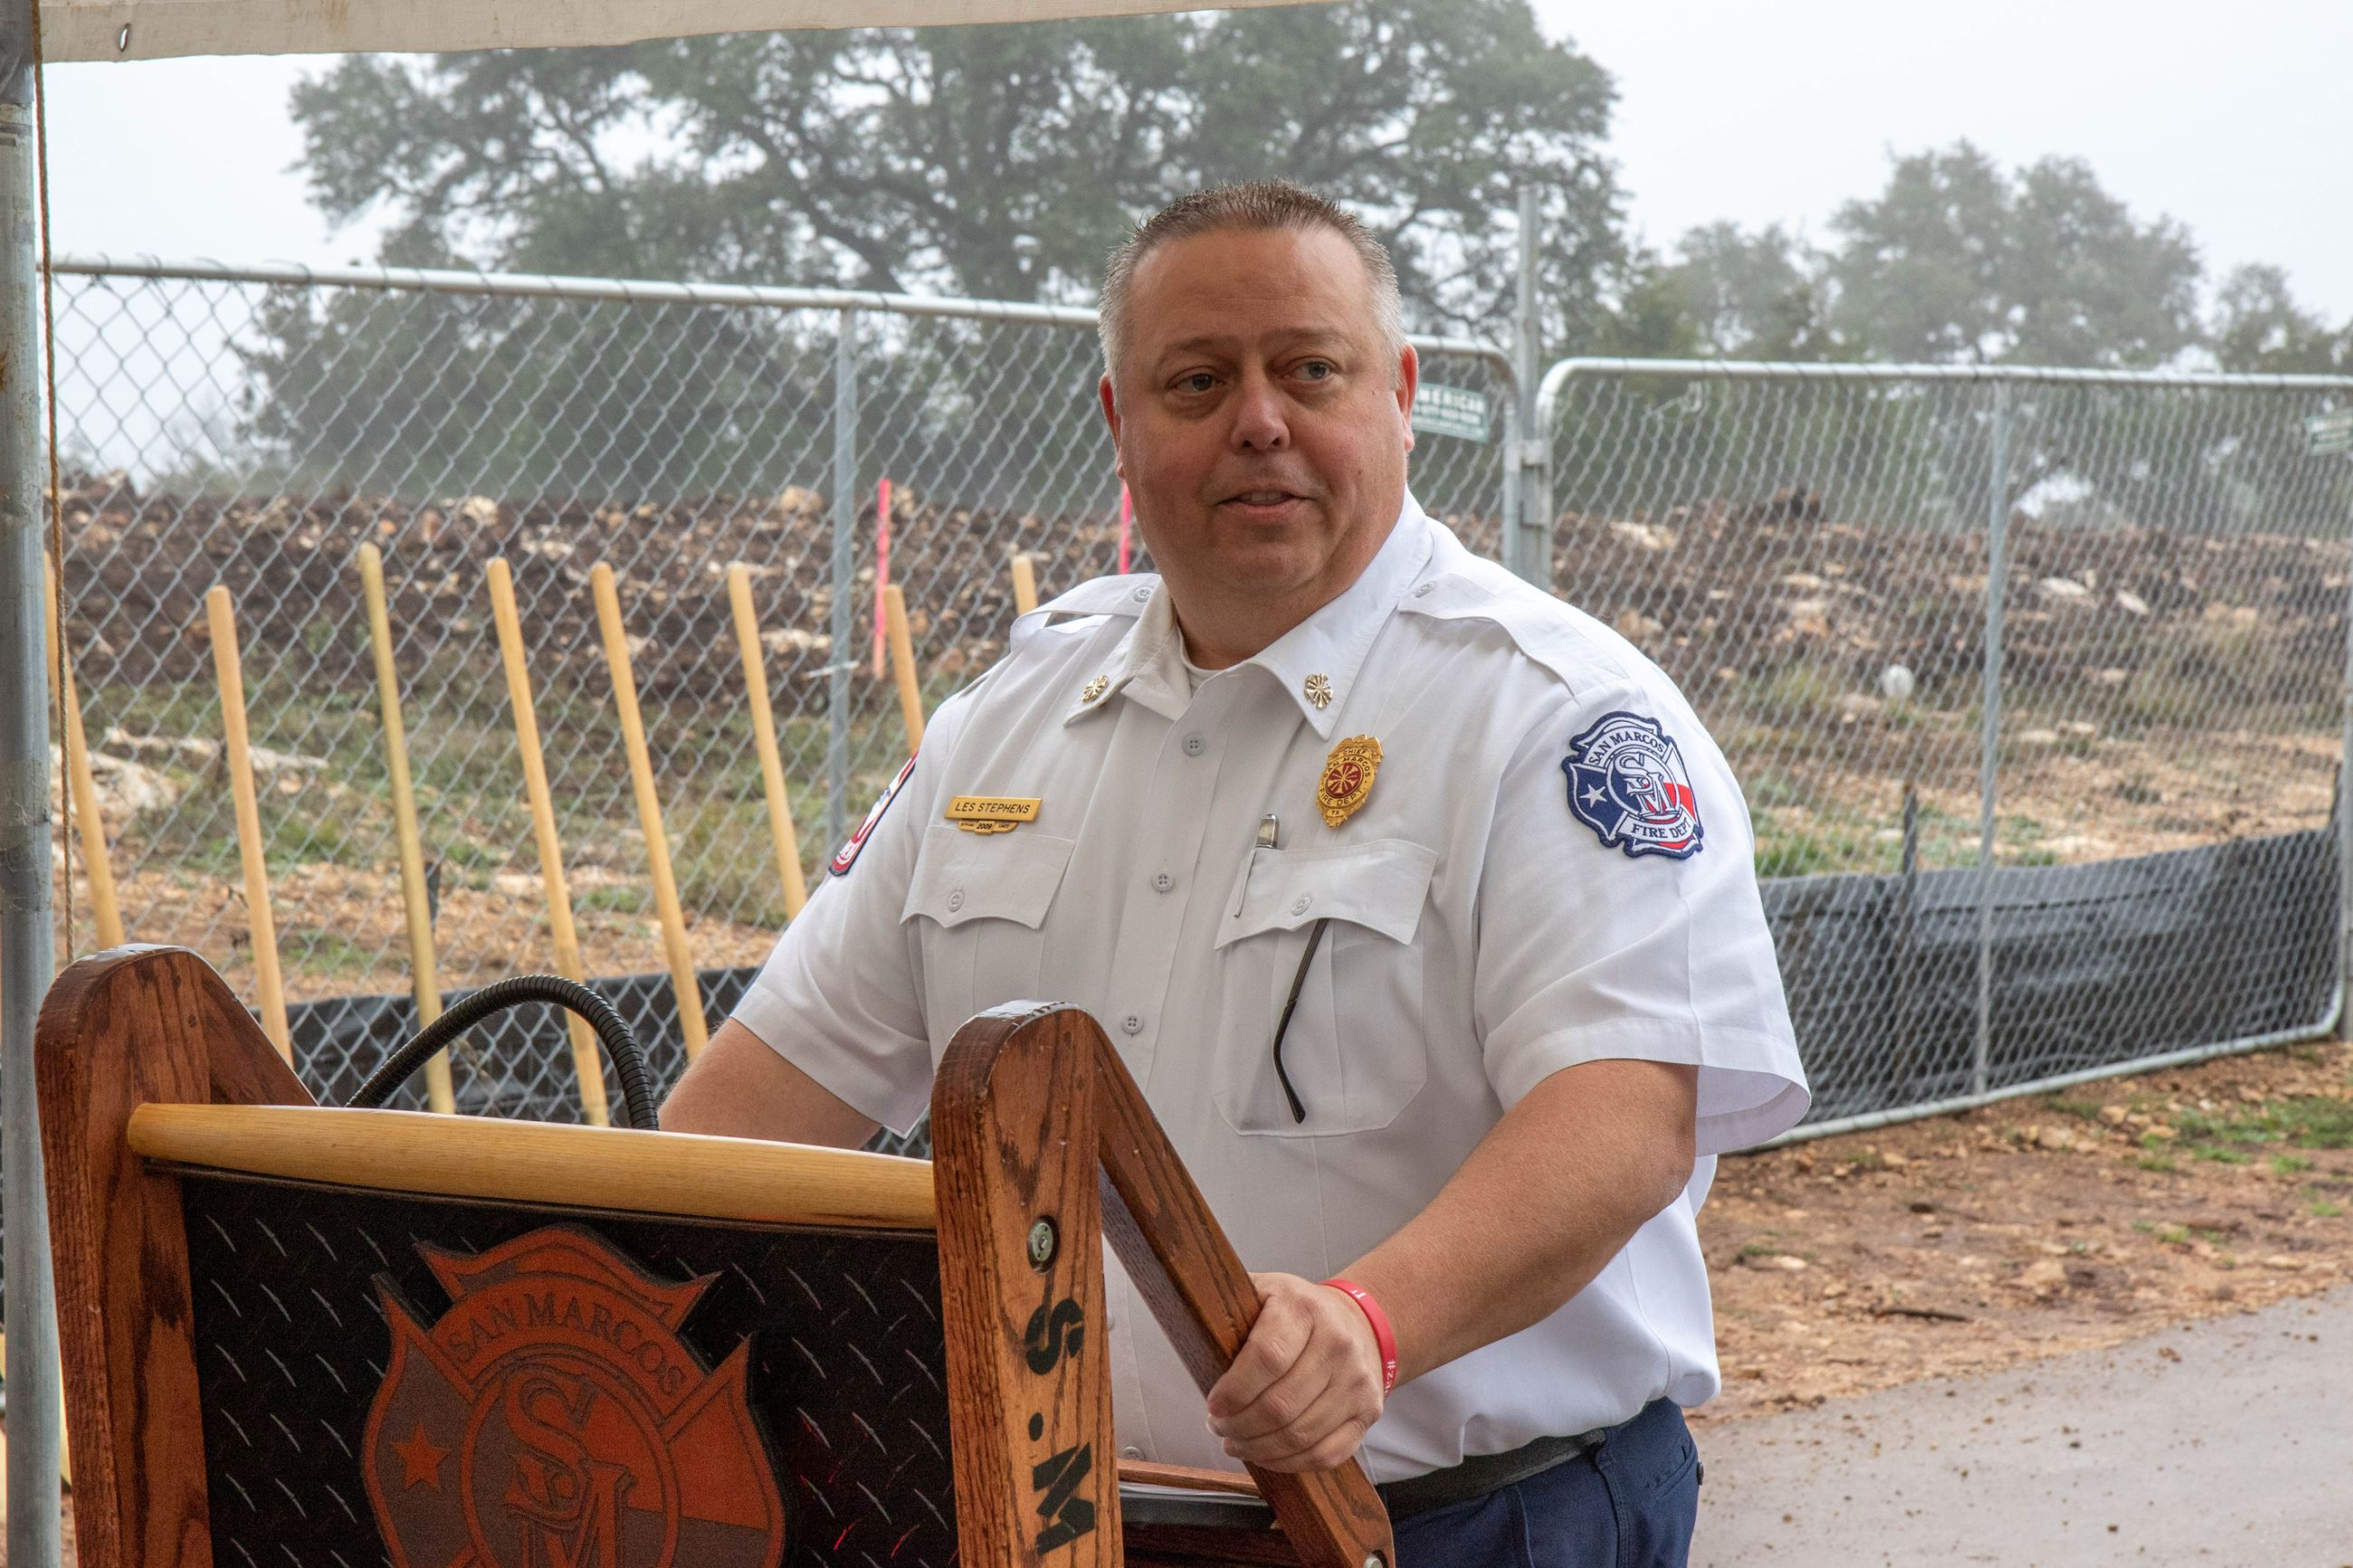 Fire House Groundbreaking-Chief Stephens